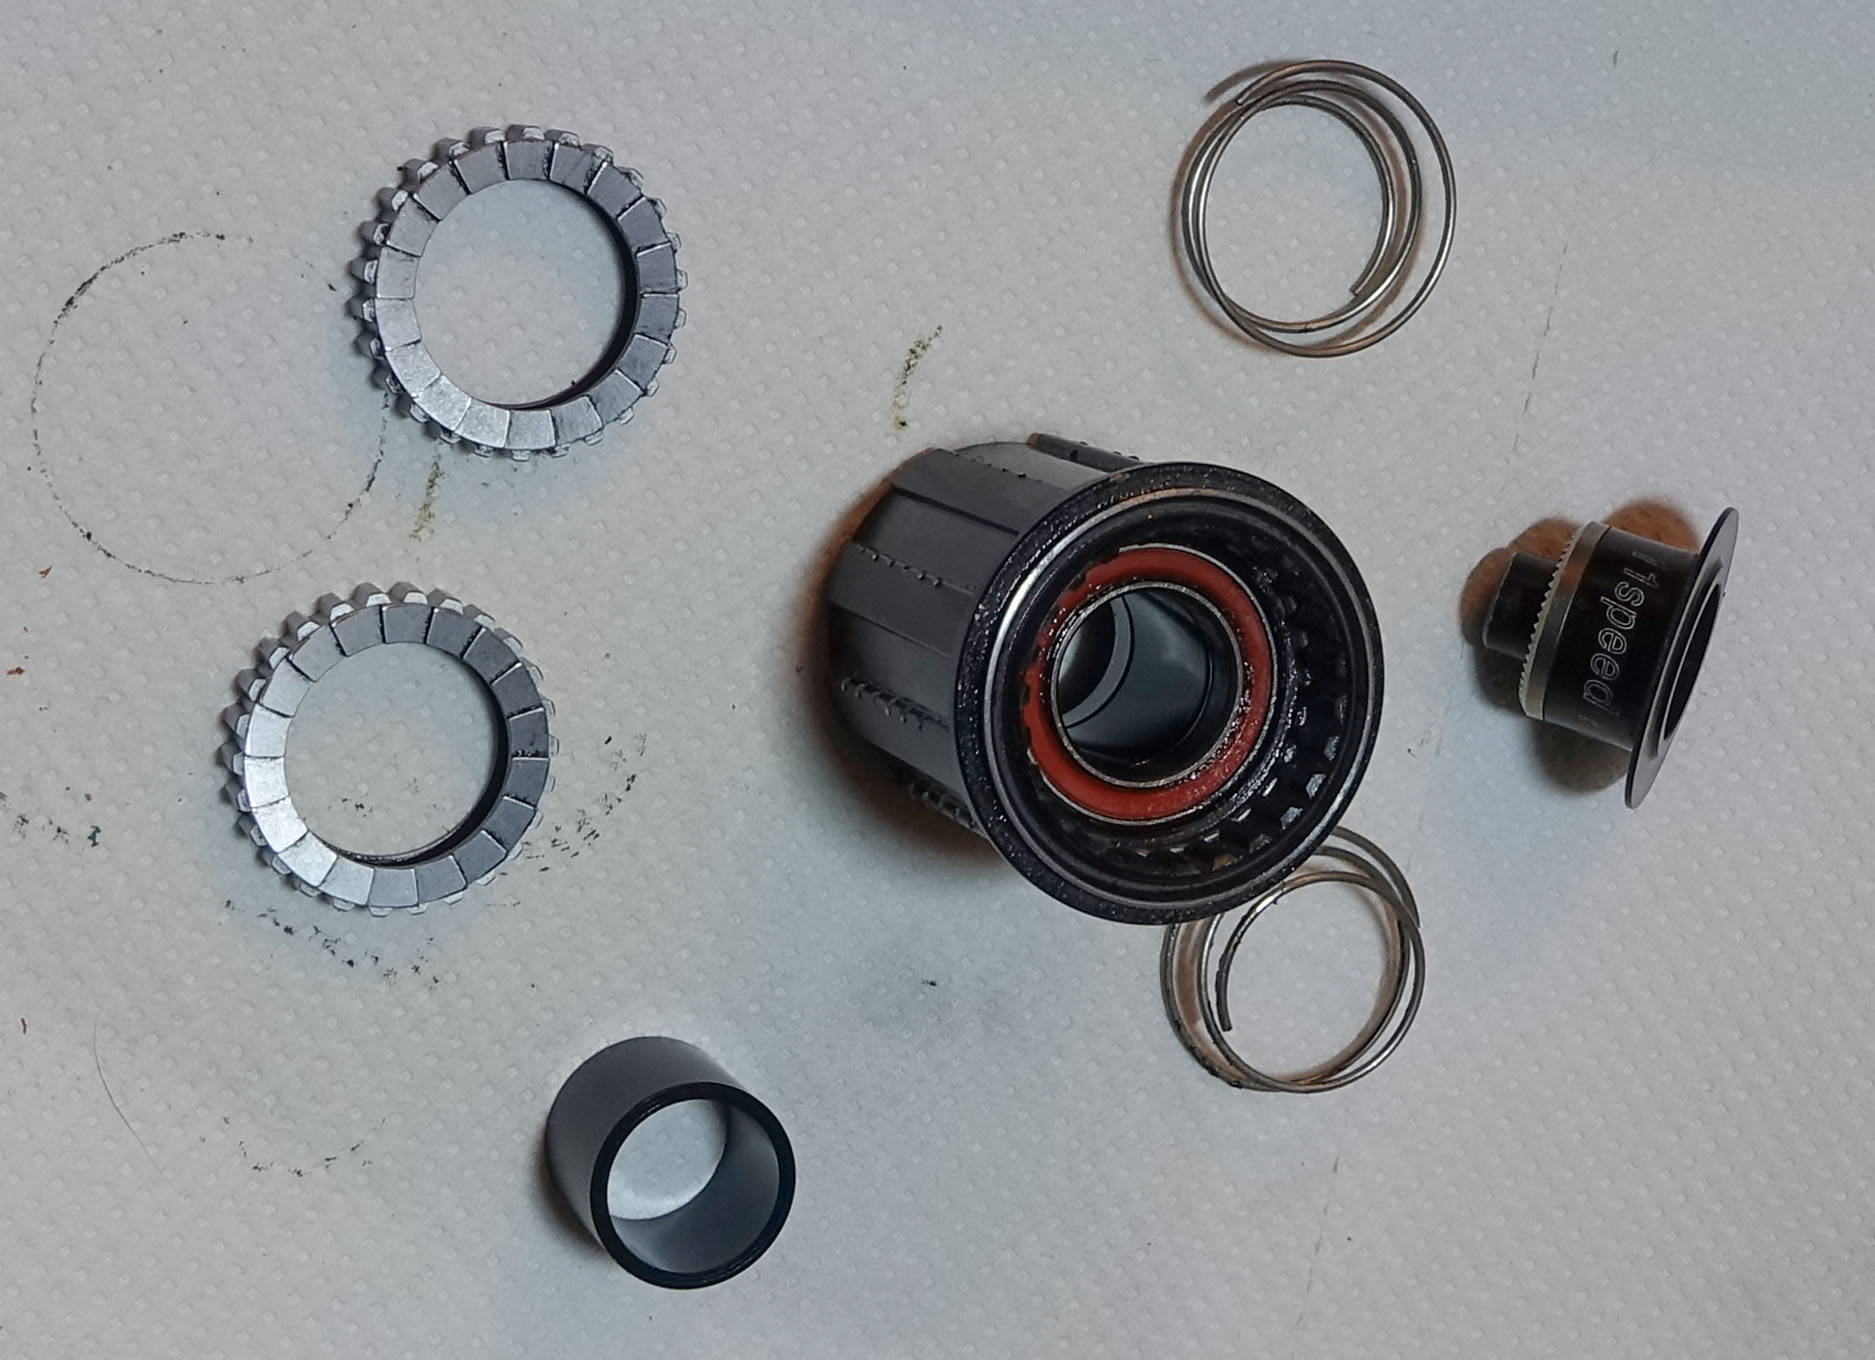 DT Swiss freehub parts